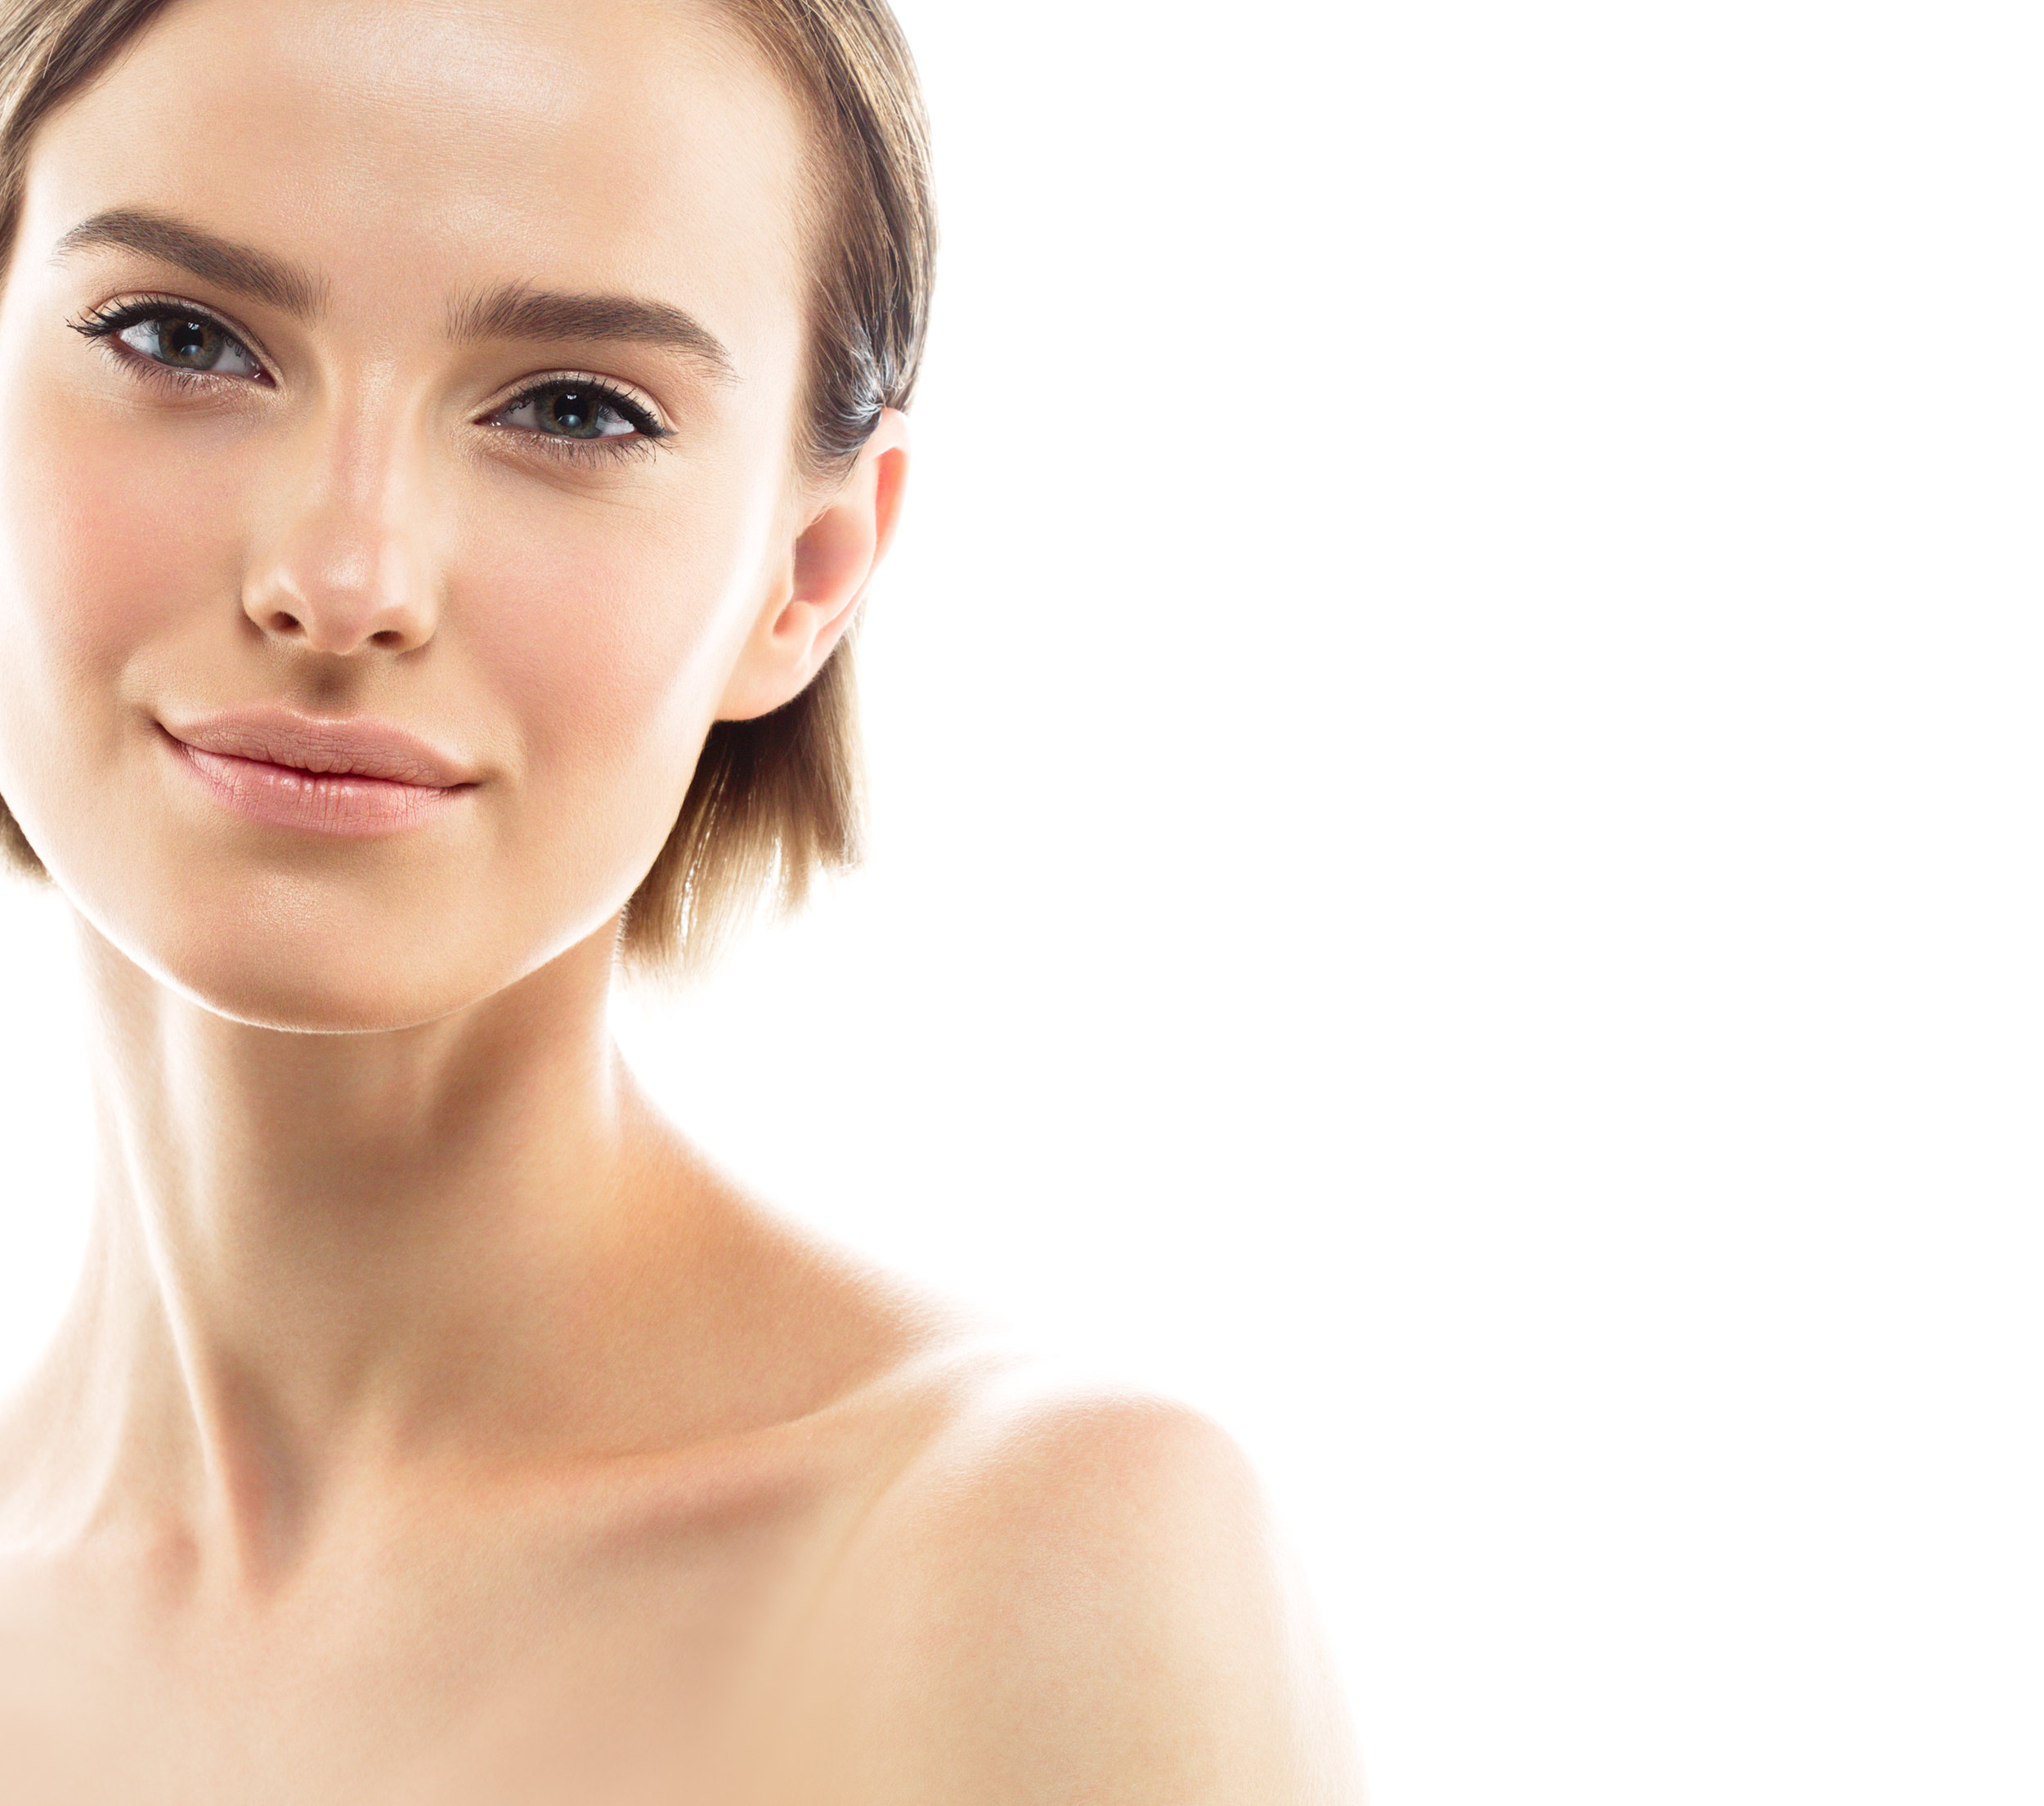 3 STEPS. 30 MINUTES. THE BEST SKIN OF YOUR LIFE. BOOK WITH JENNIFER OUR AESTHETICIAN.